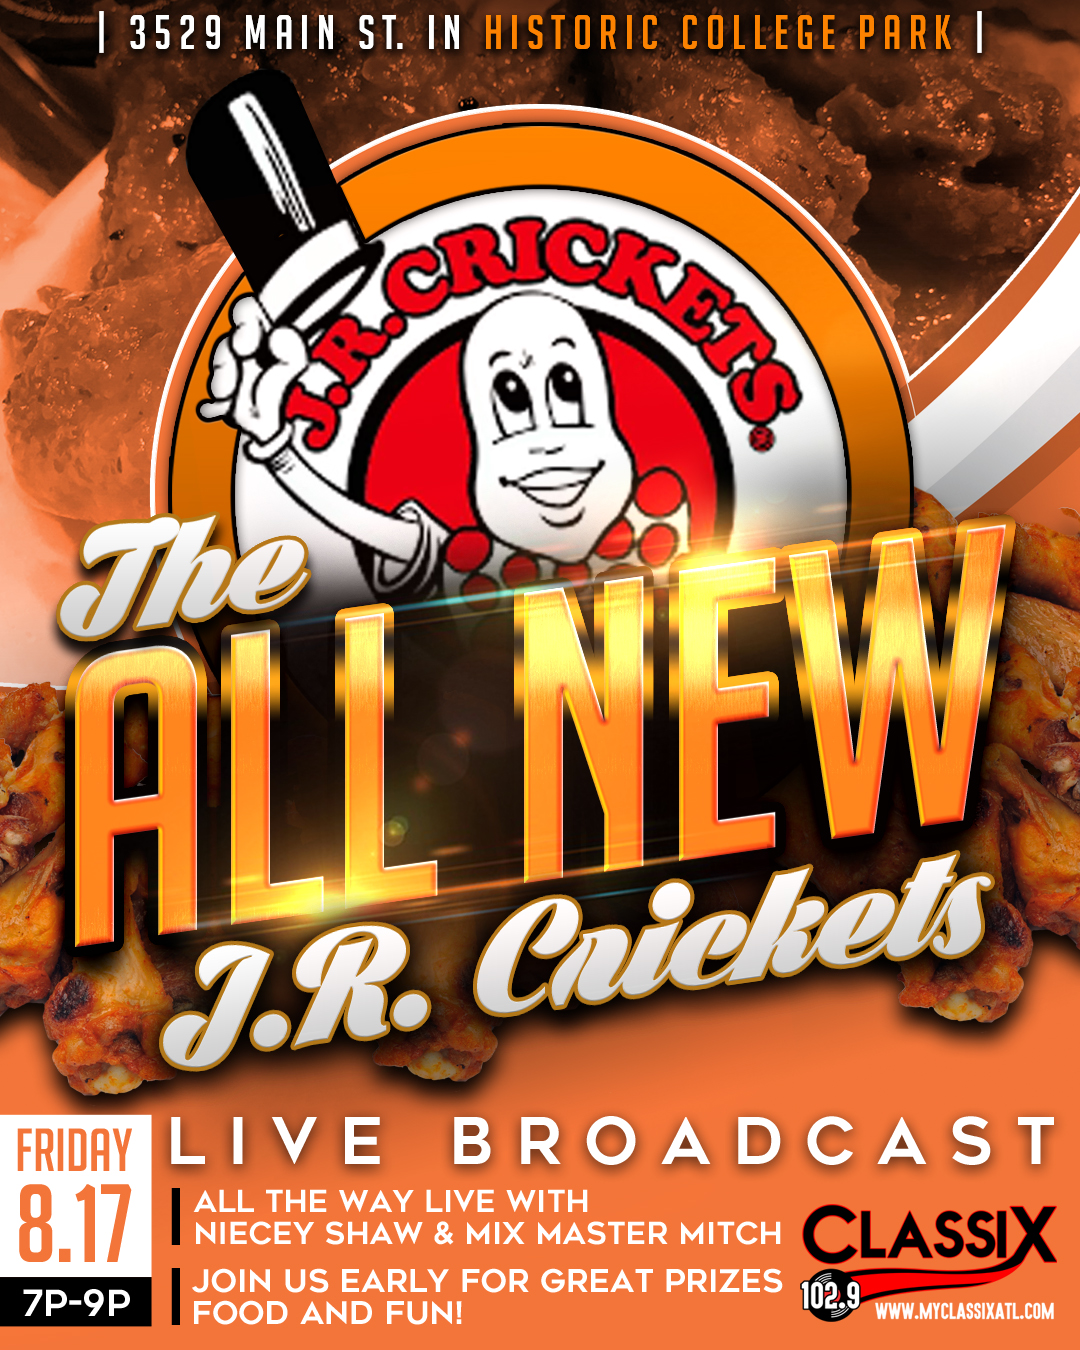 J.R. Crickets Grand Opening